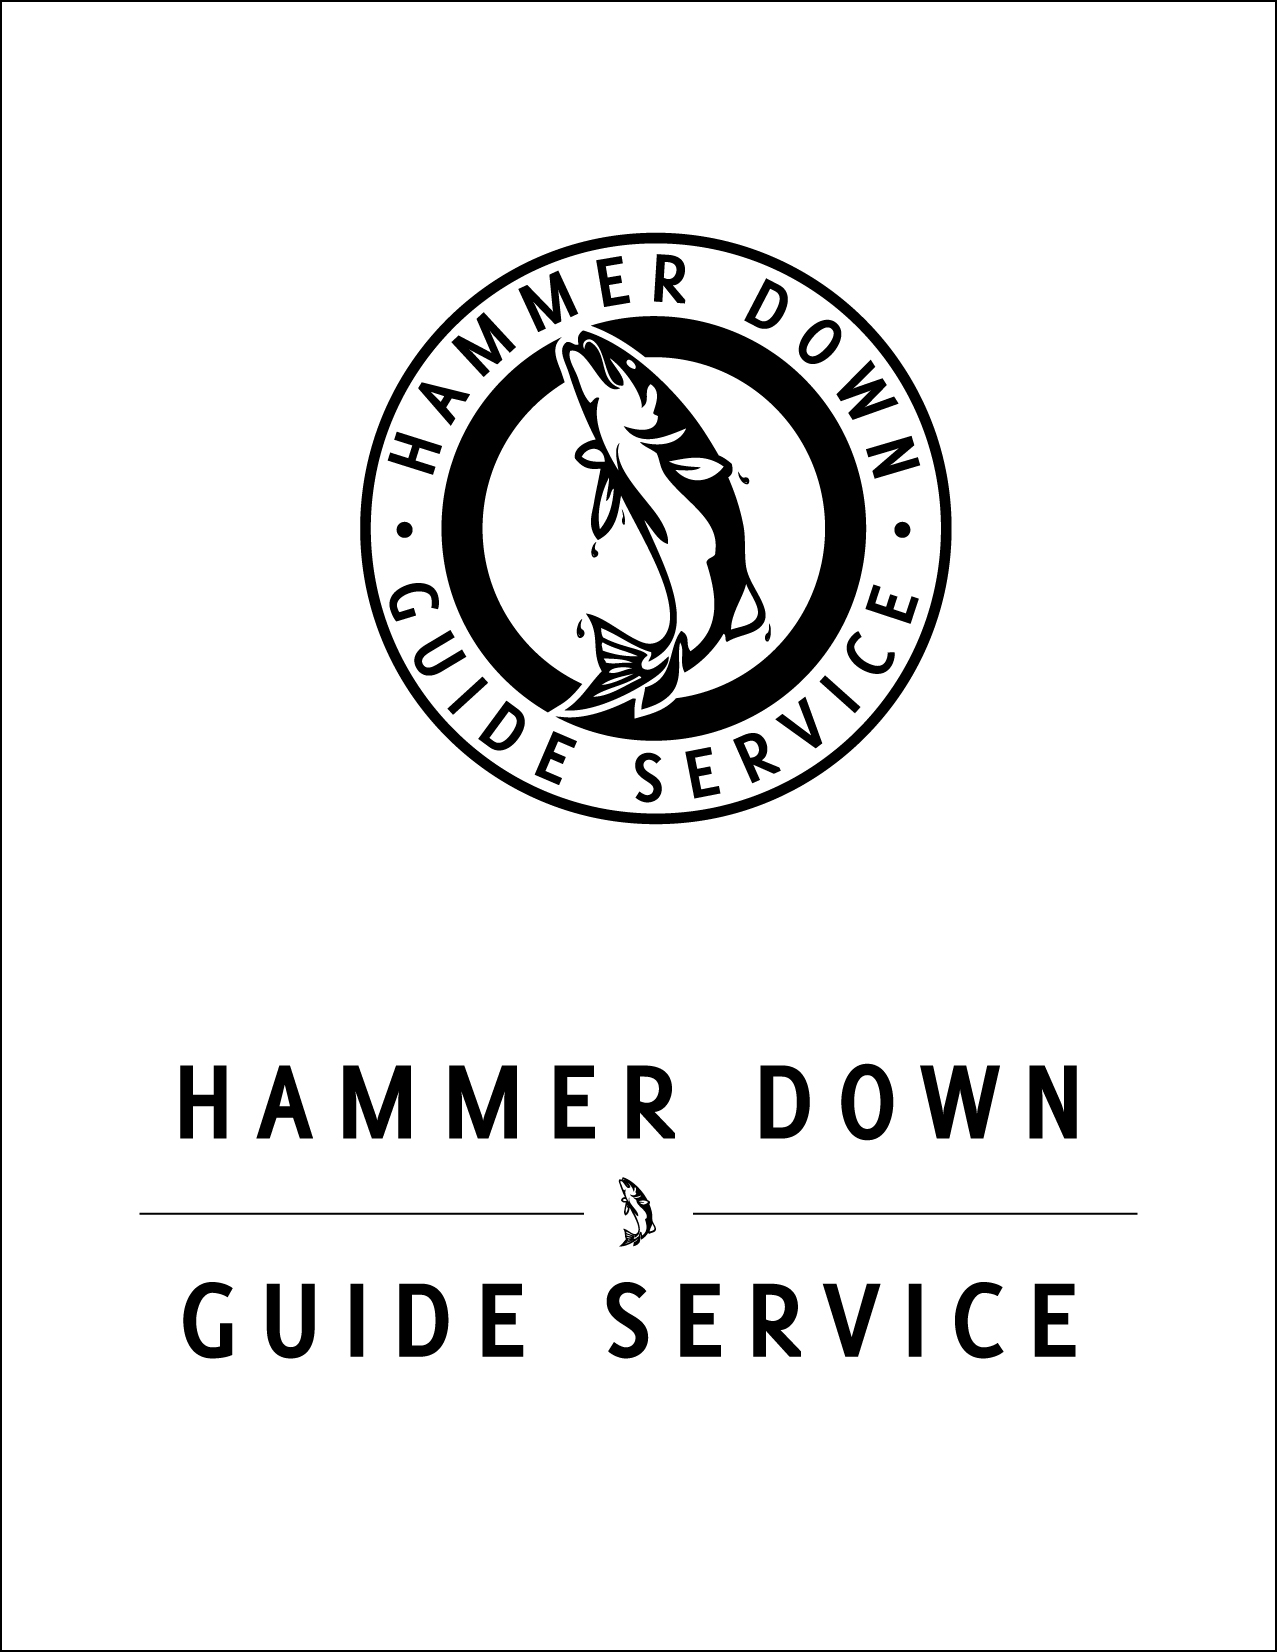 Logo design for fishing guide service based in Corvallis, Ore.